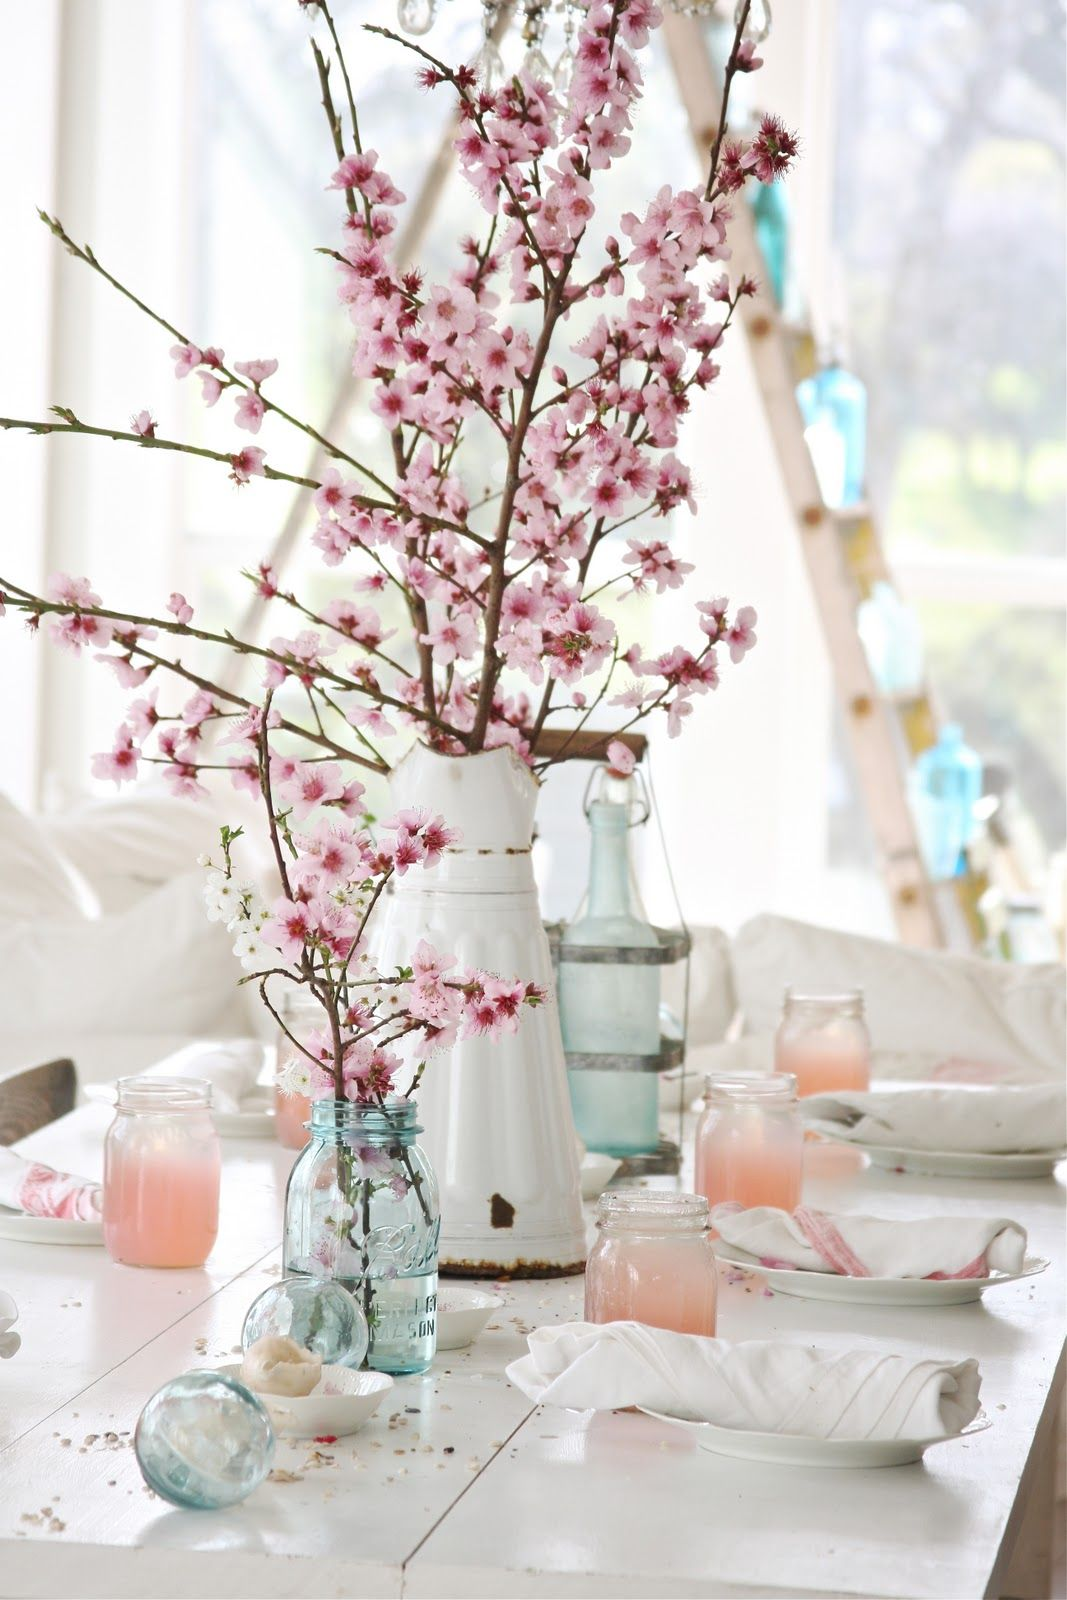 photo Reformation Welcomes Spring With Delicate Flowers